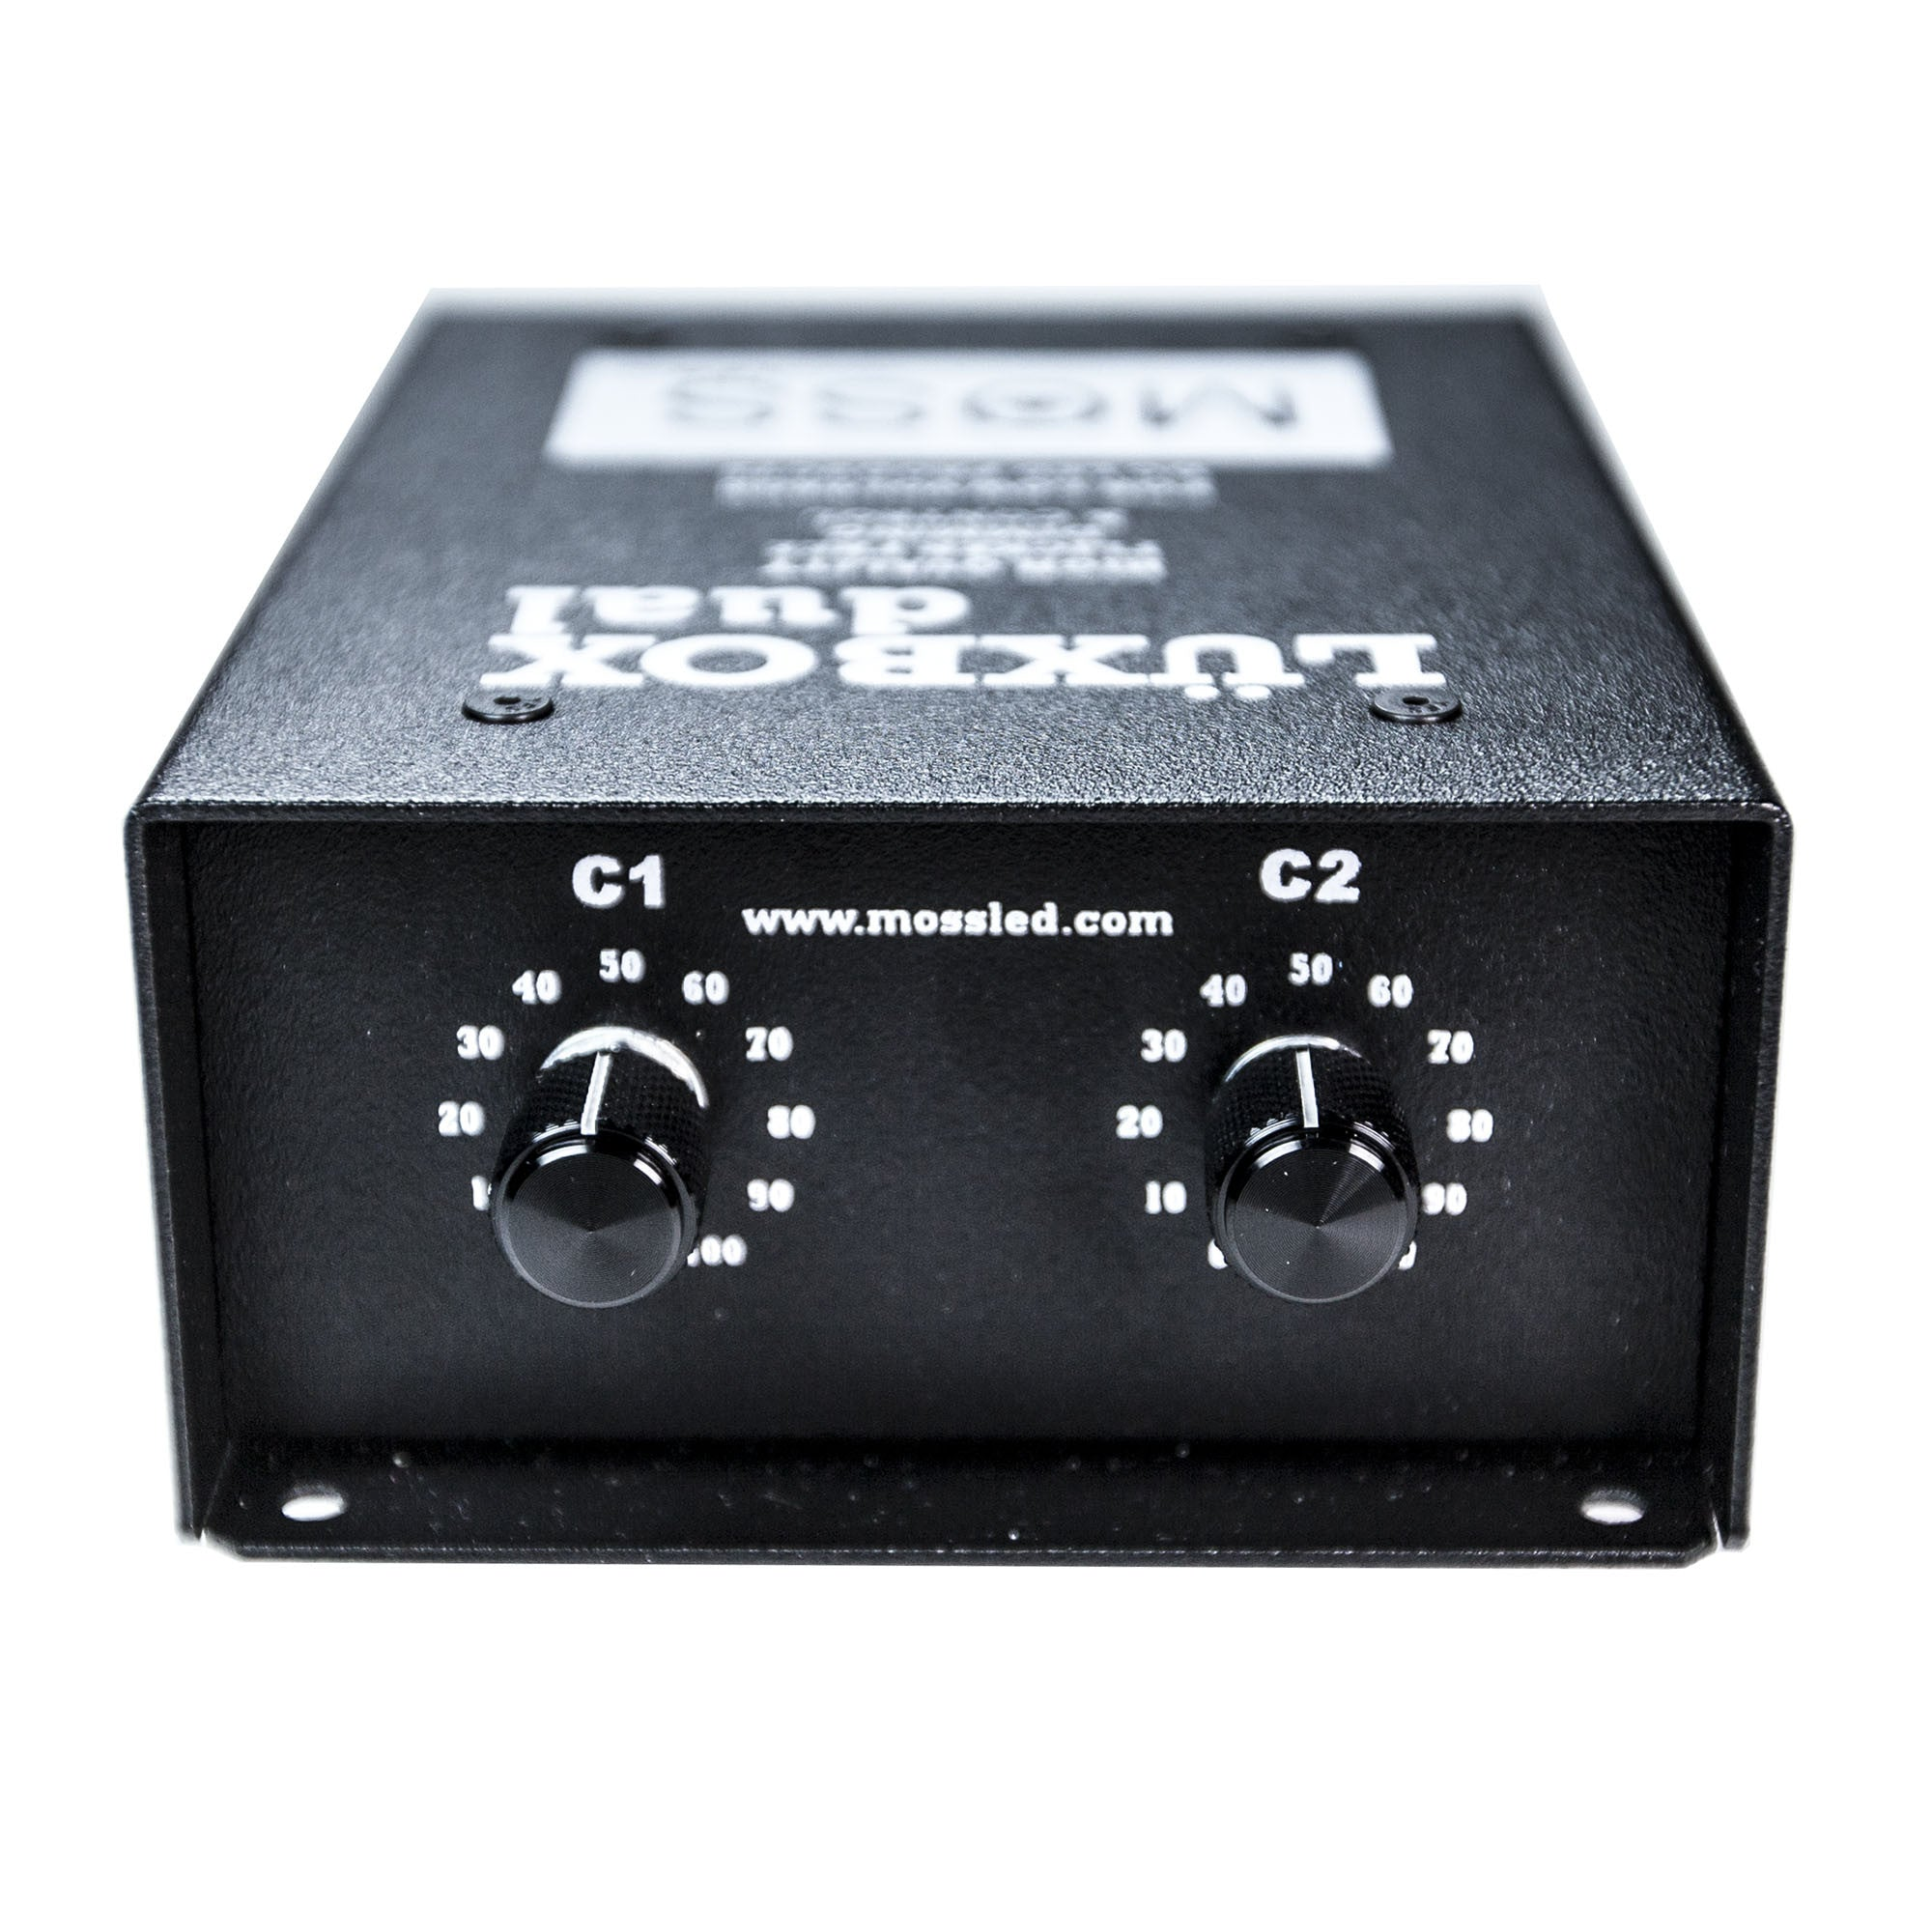 LUXBOX dual - 2 Channel Control * DISCONTINUED * - Moss LED